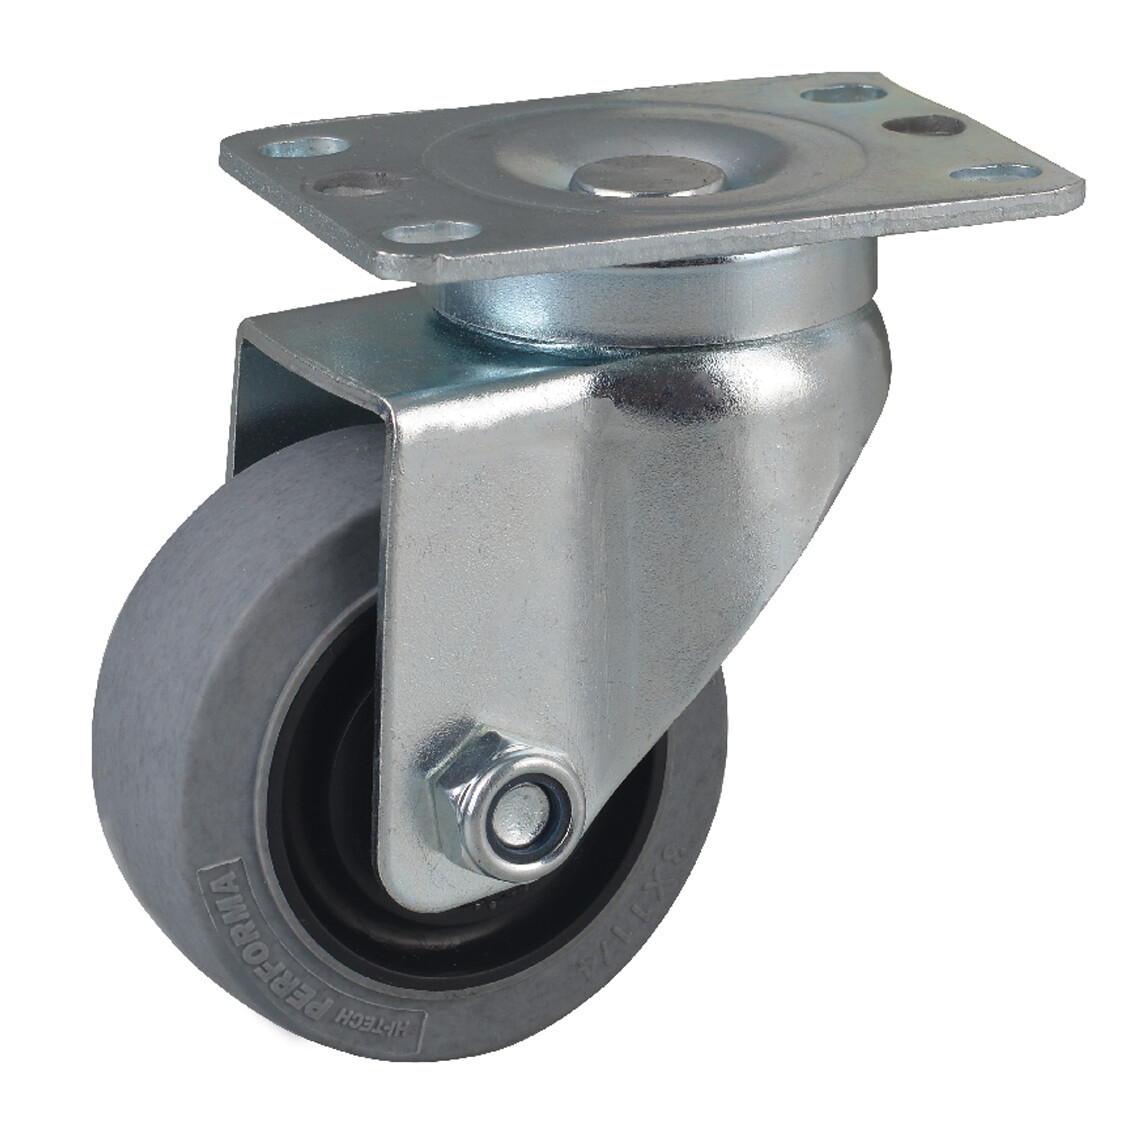 Plate type swivel conductive caster, grey